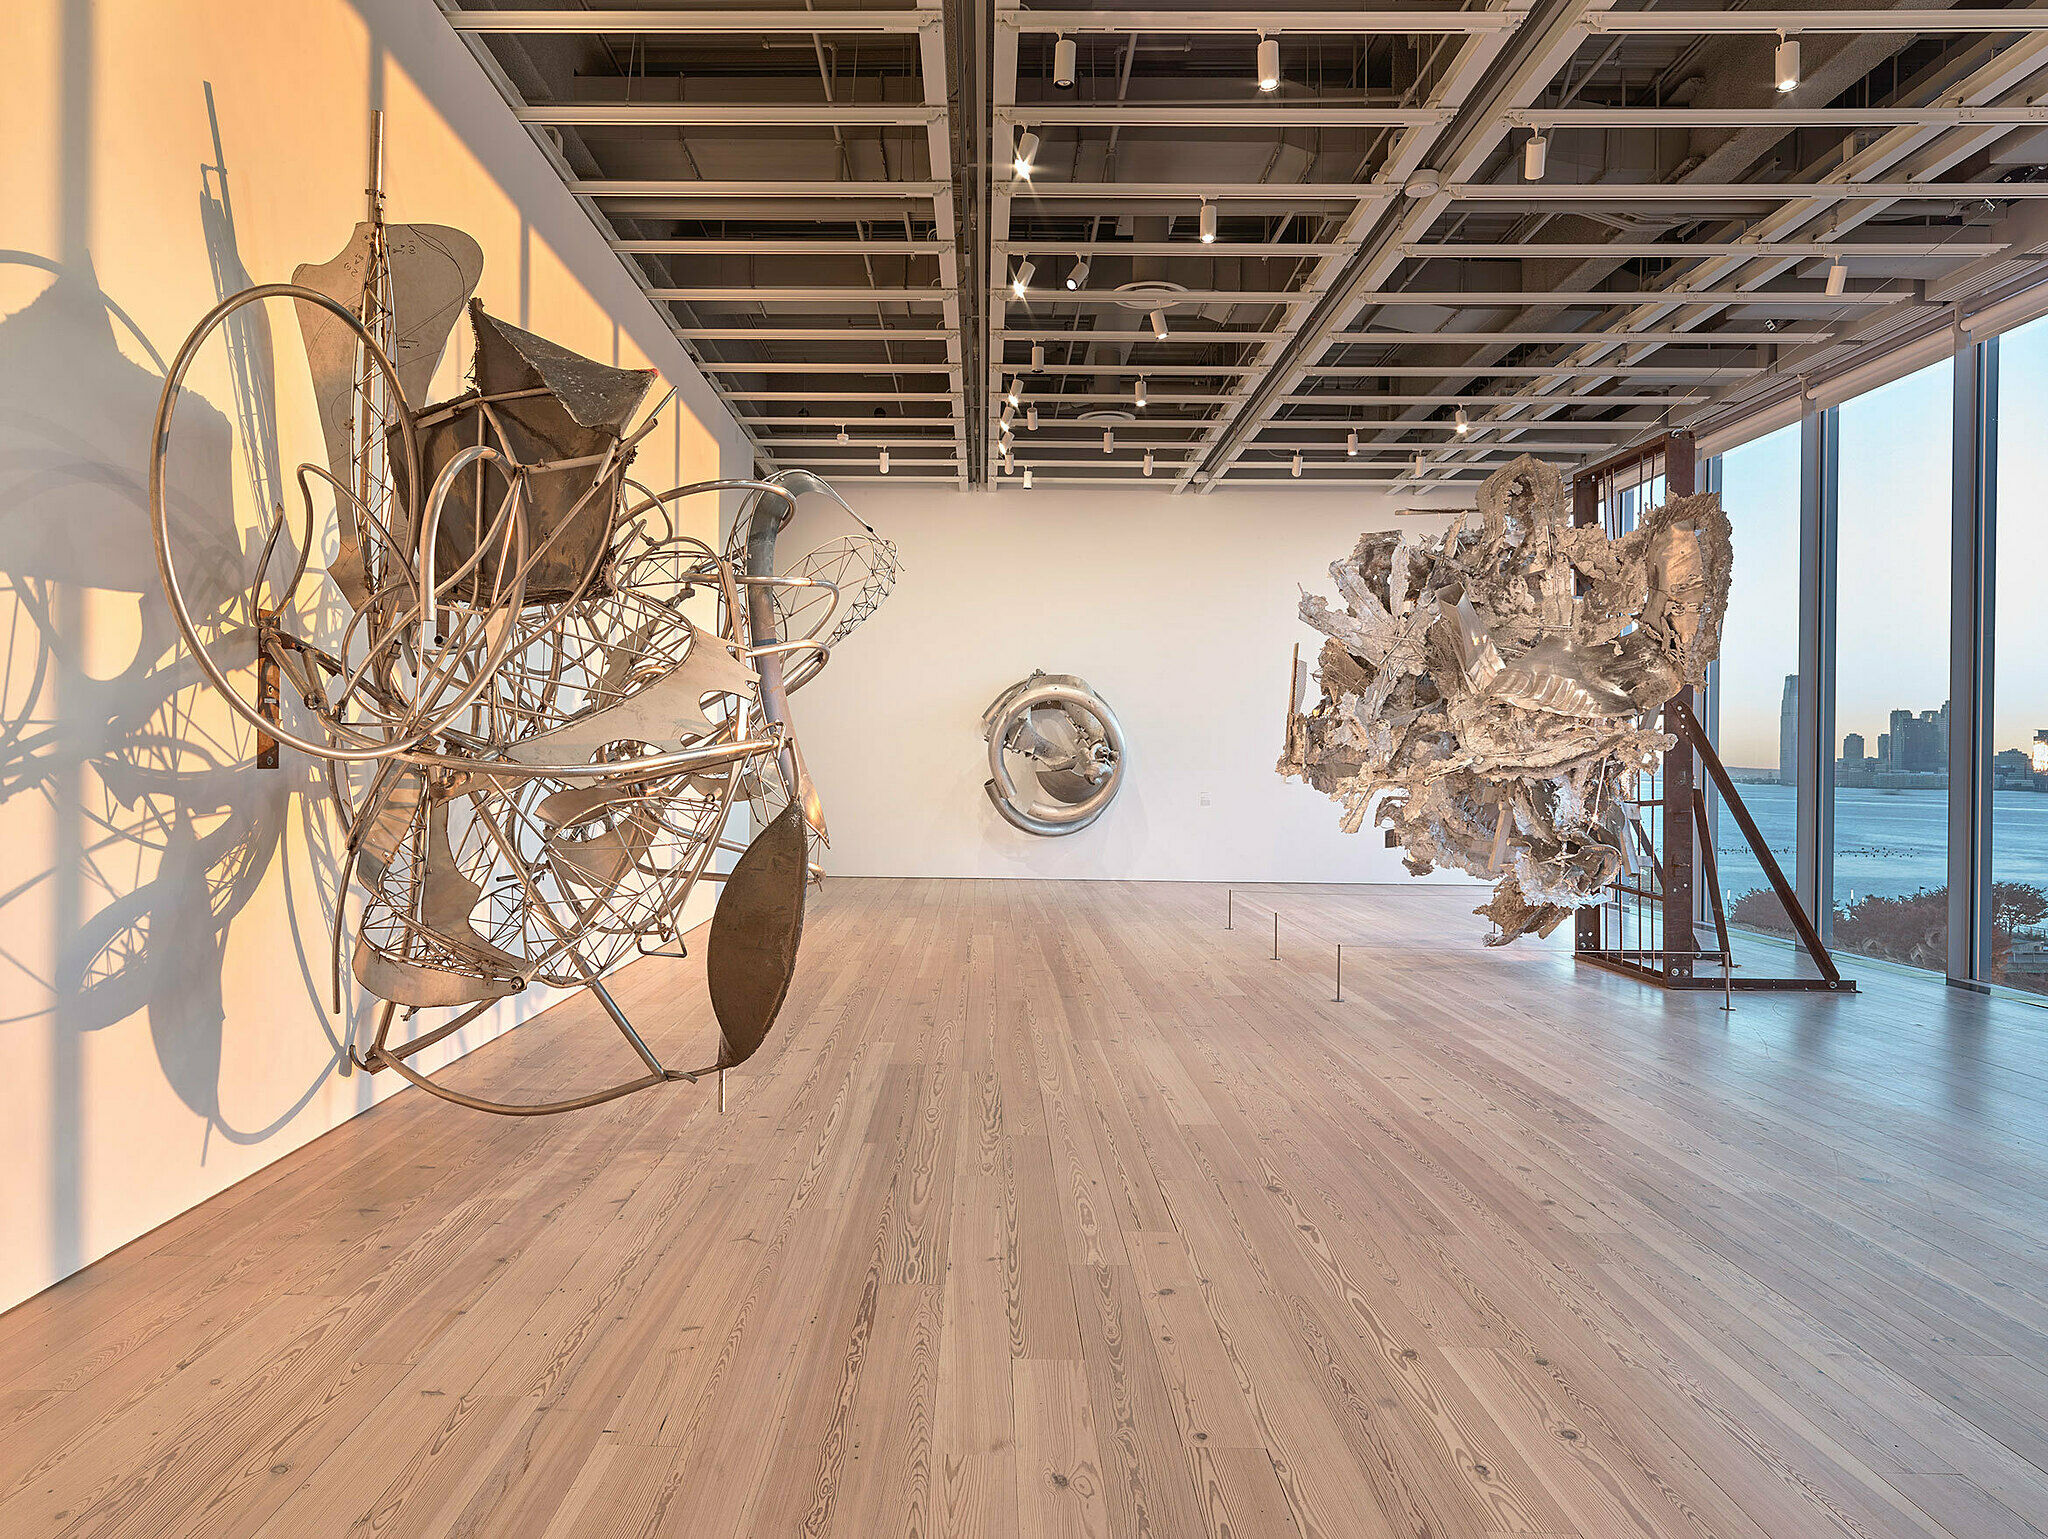 Multiple metal sculptures hang on walls and stand freely with window to the right.